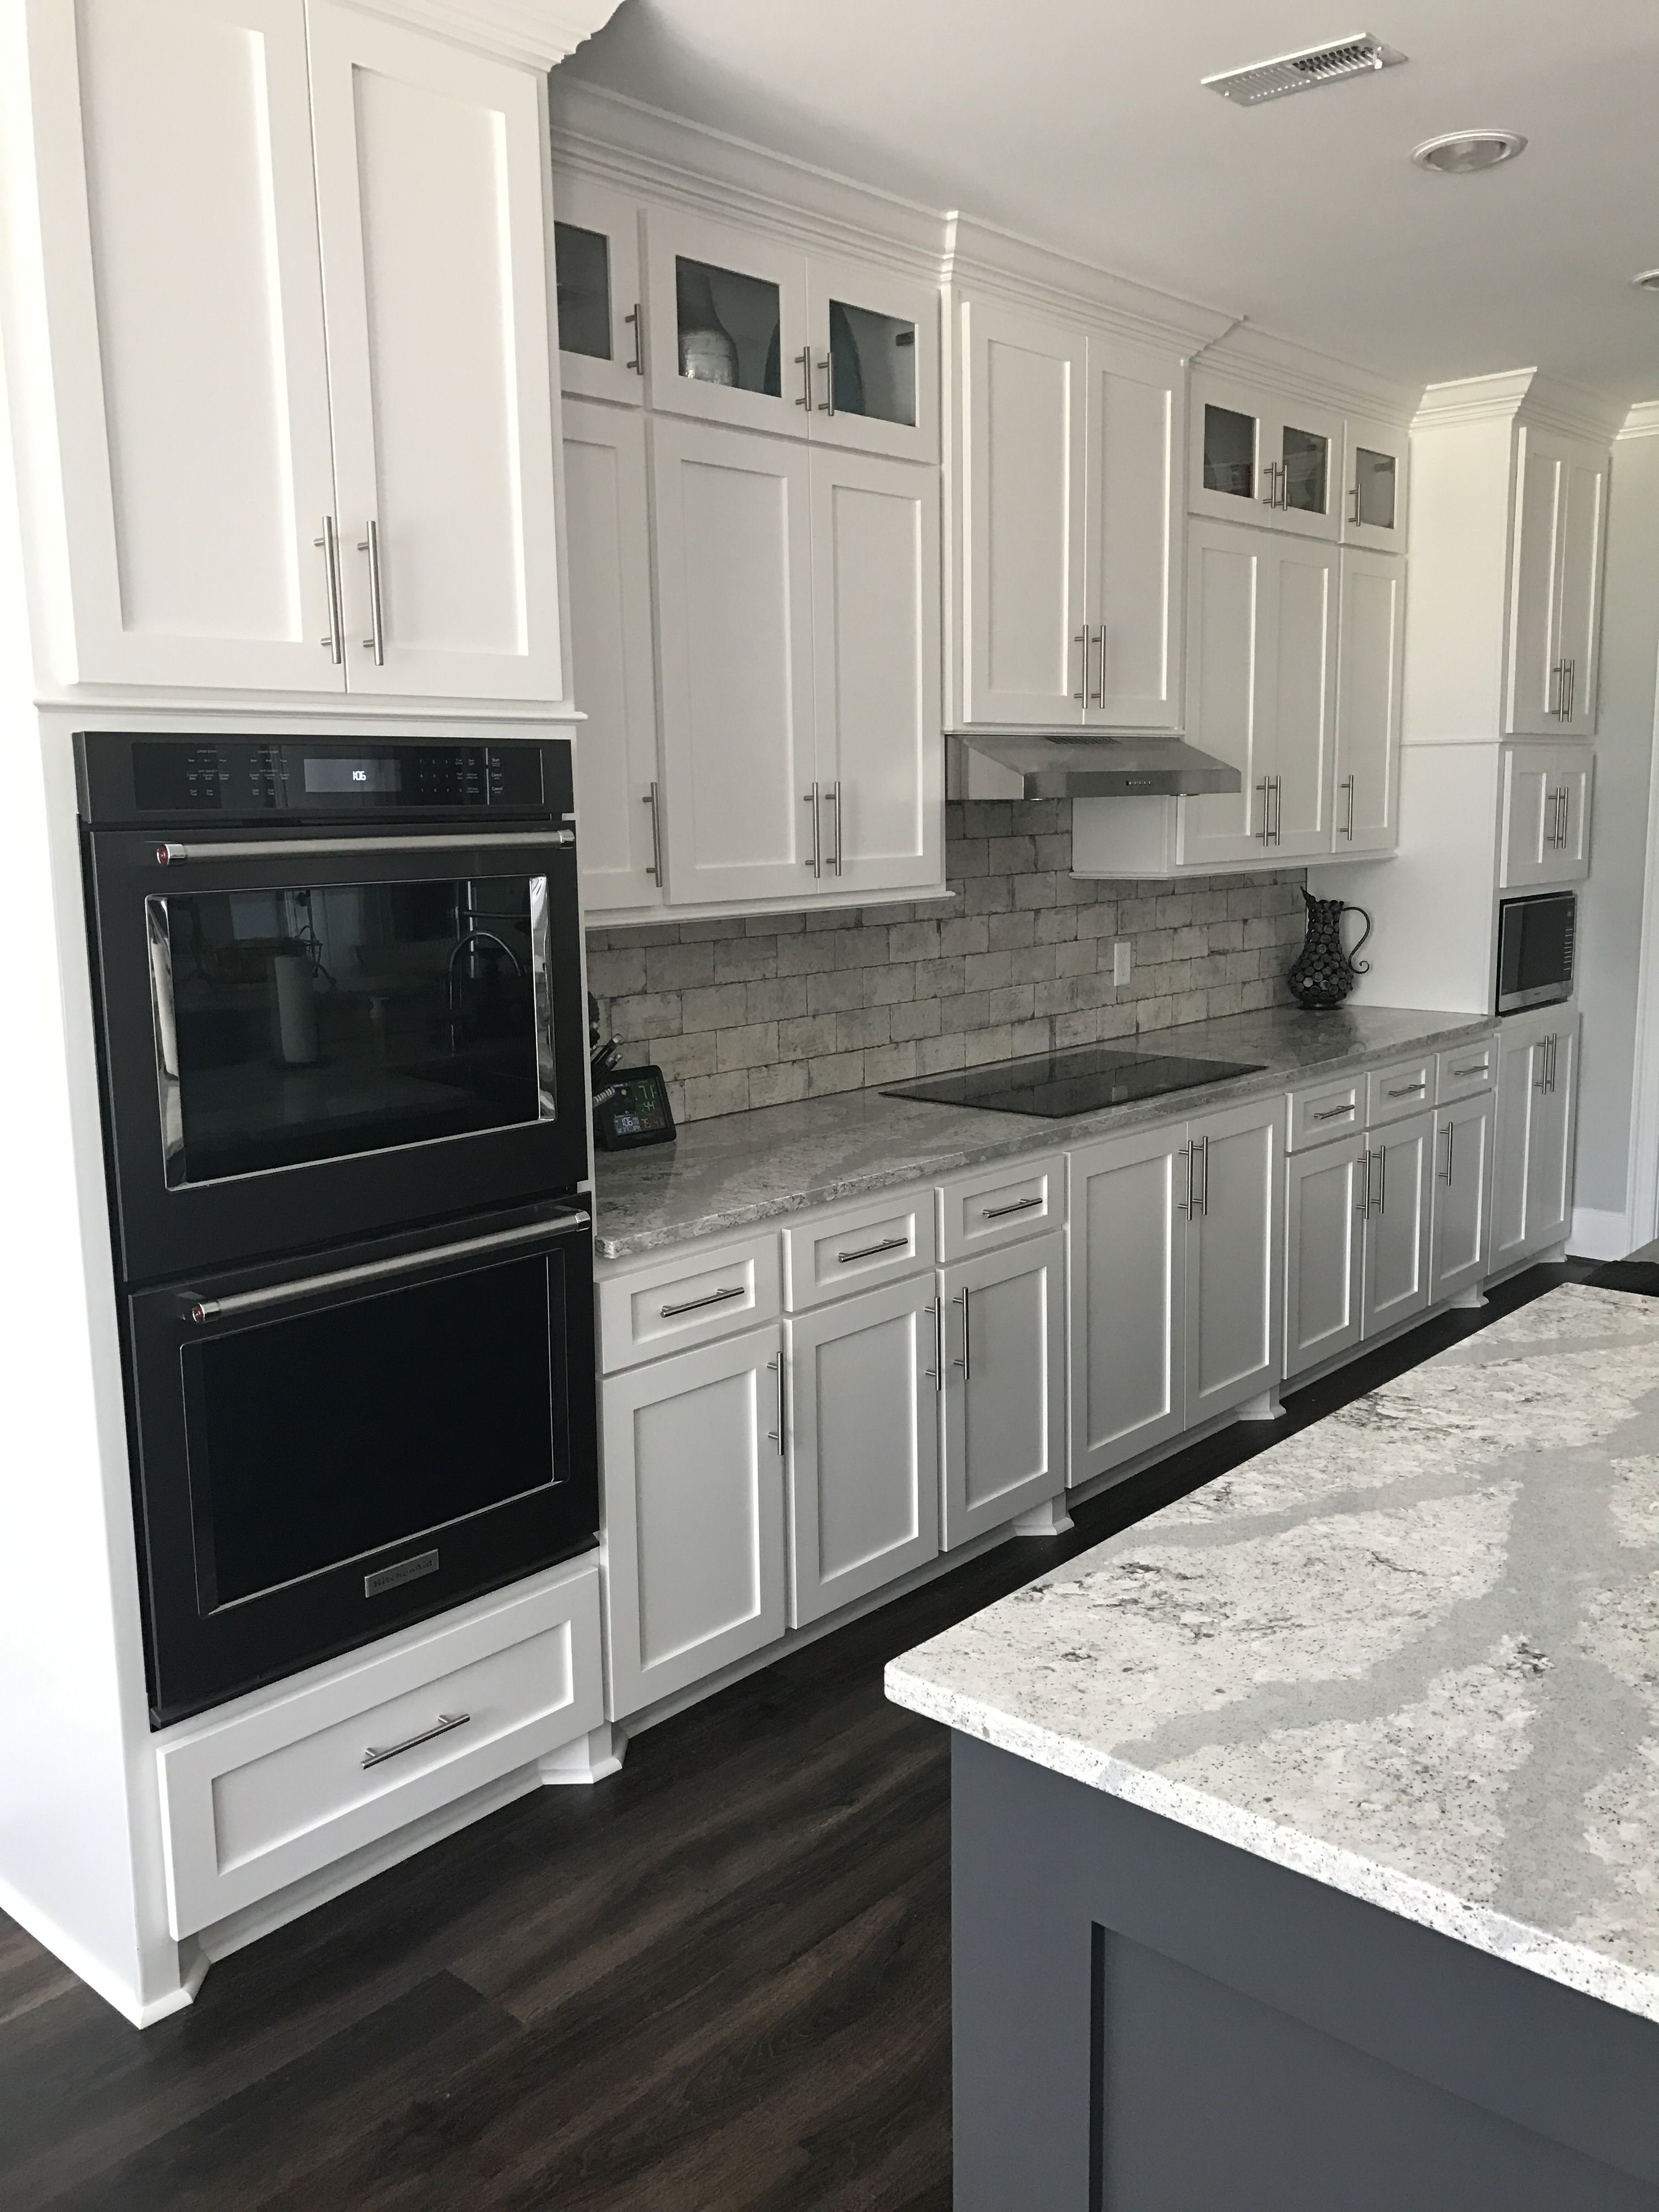 Kitchen Ideas With White Cabinets And Black Appliances